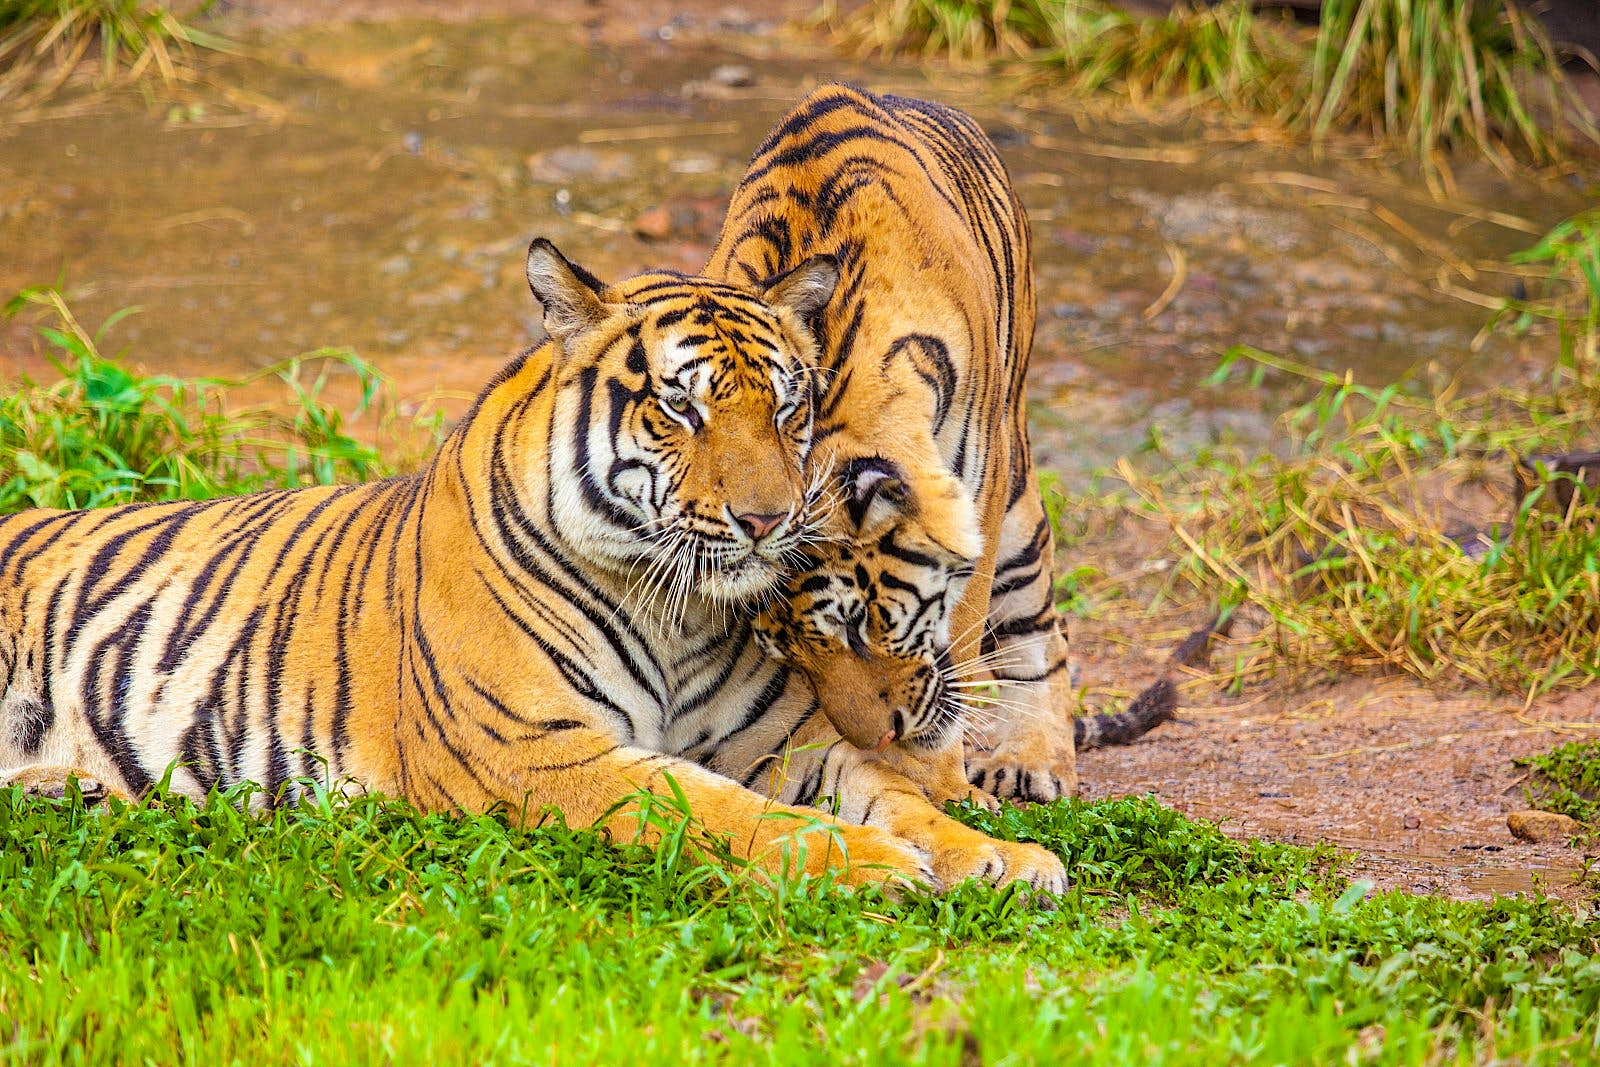 One tiger is lying on marshy grassland; another is cuddling up to it.